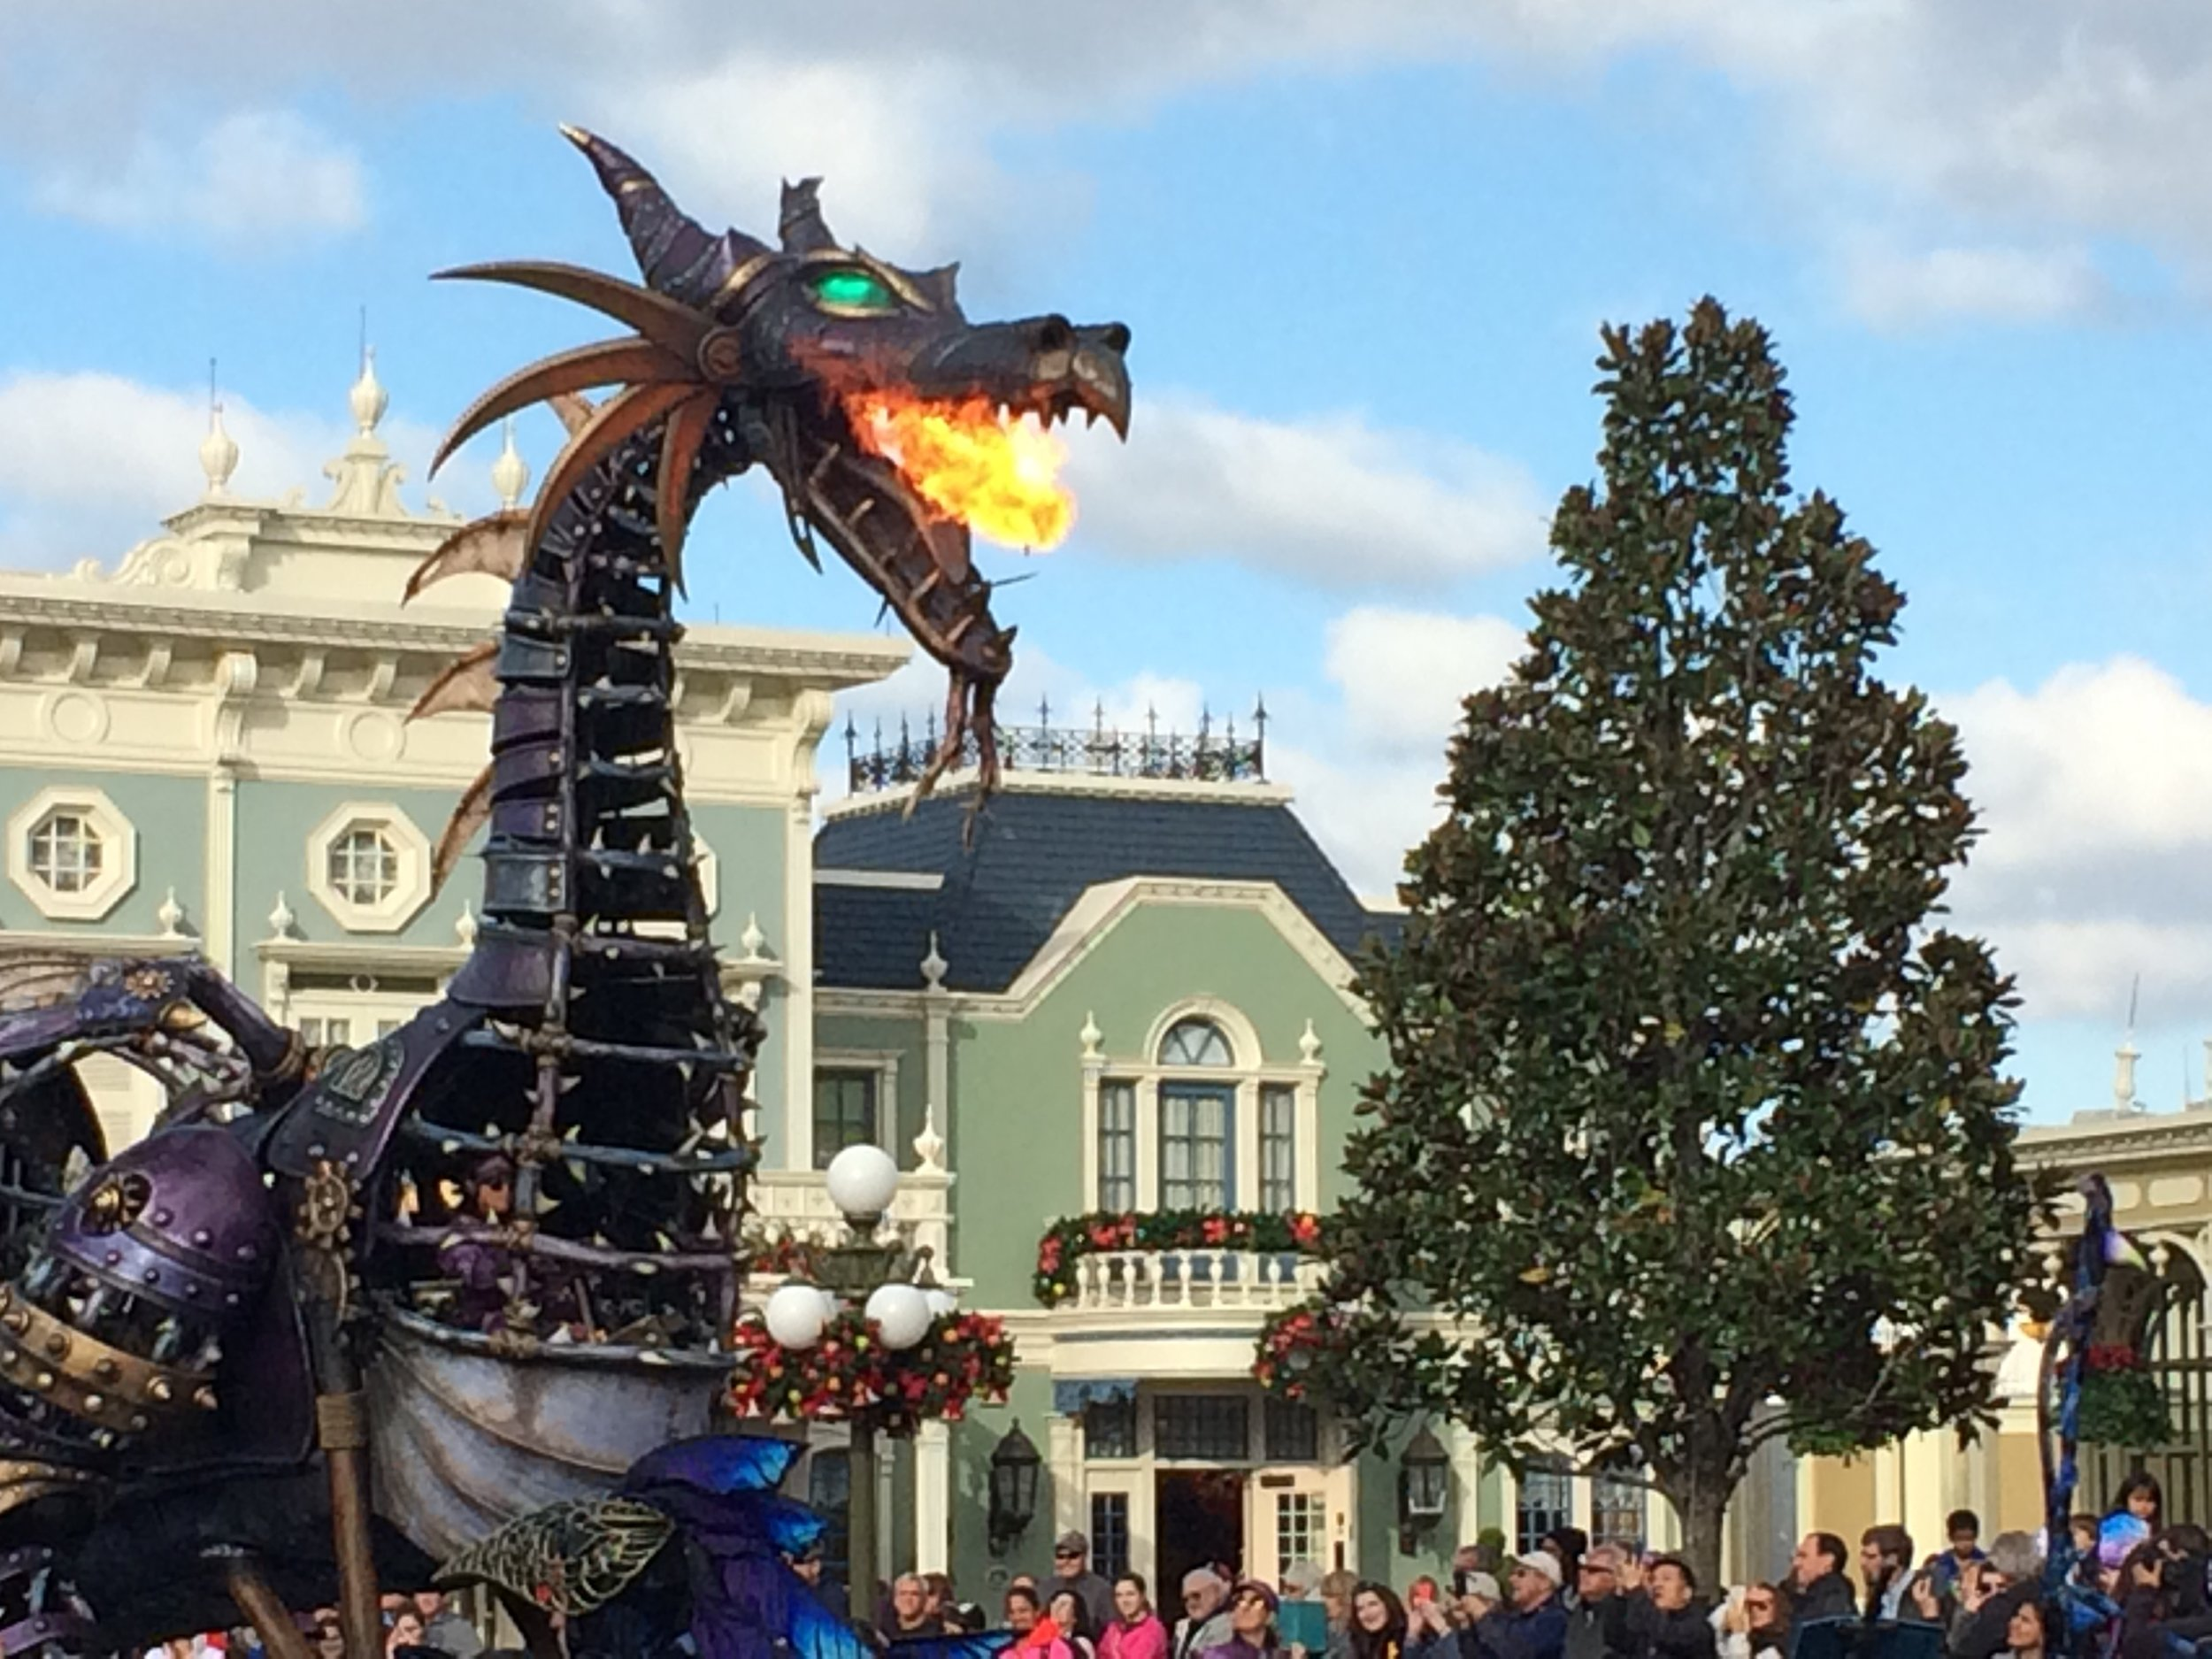 festival of fantasy dragon.jpg